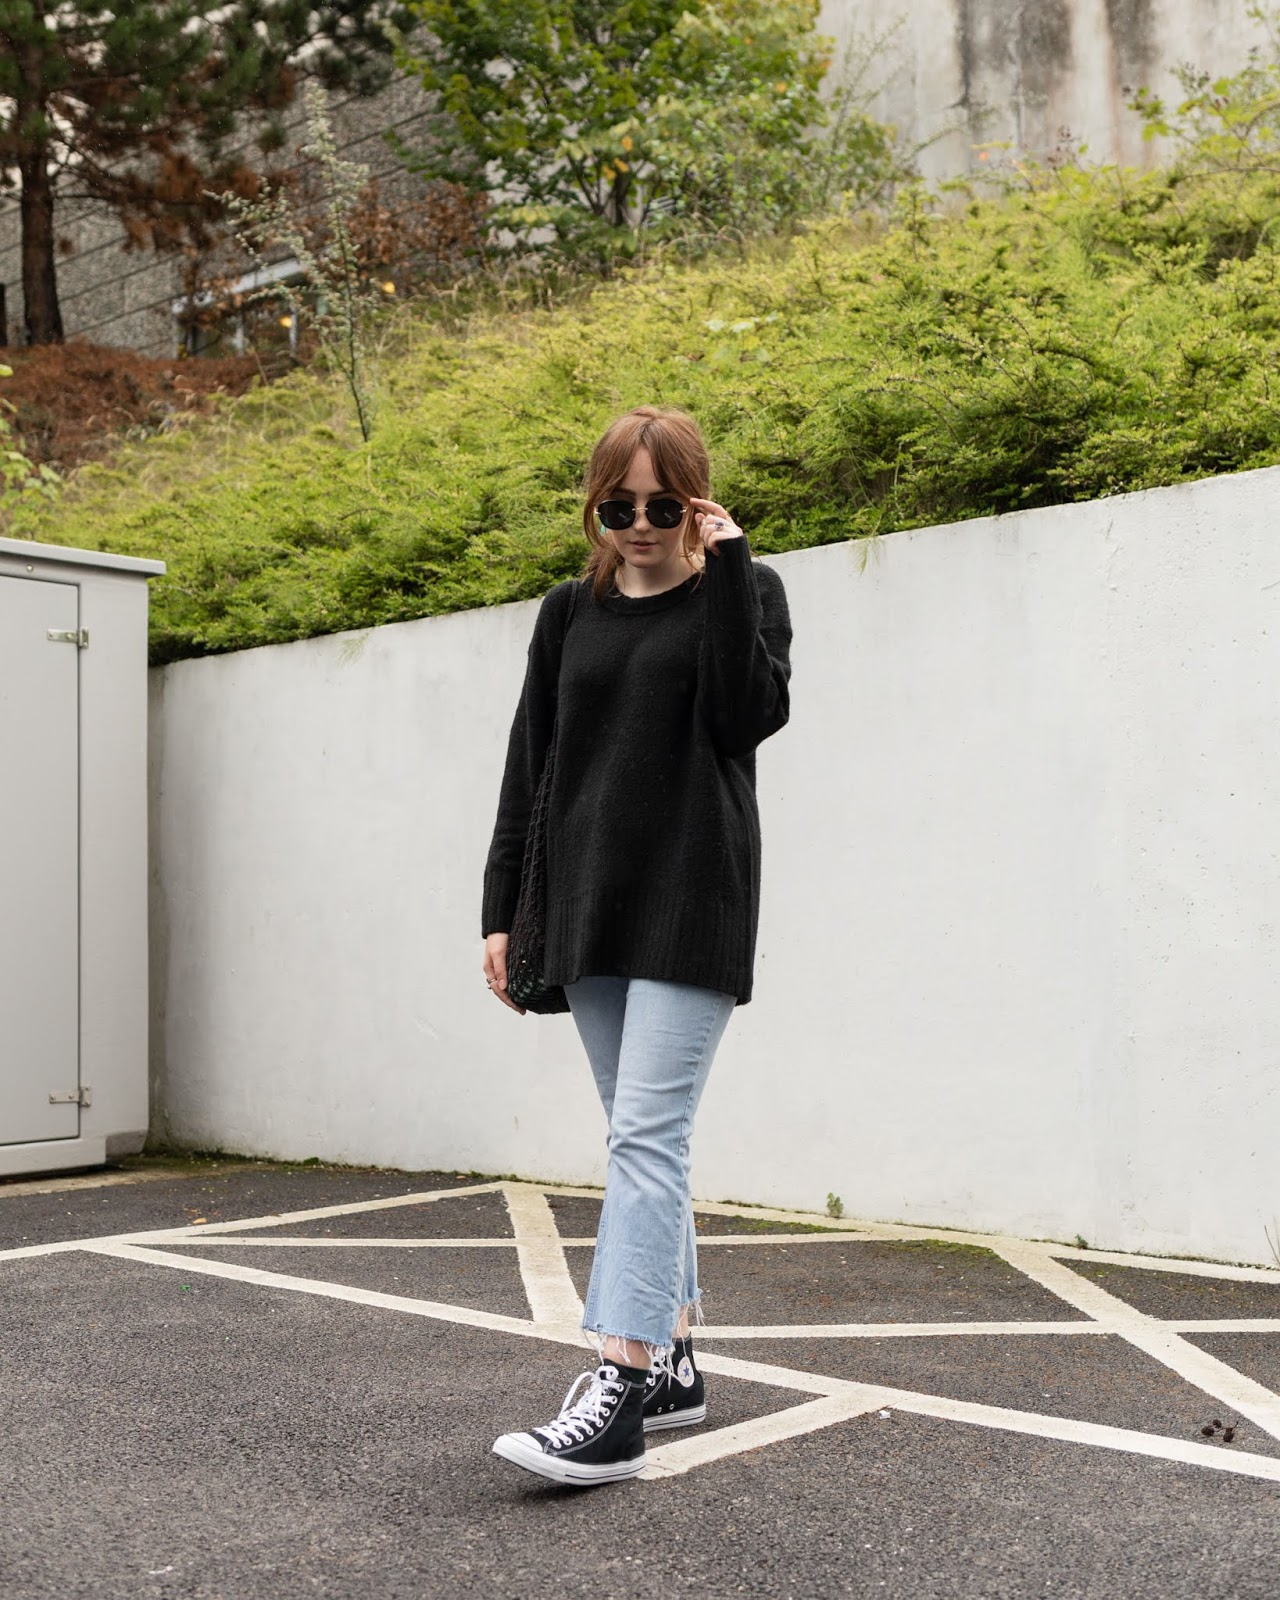 uk fashion blogger wearing oversized black jumper and light wash kick flare crop jeans and black converse with green scarf in ponytail